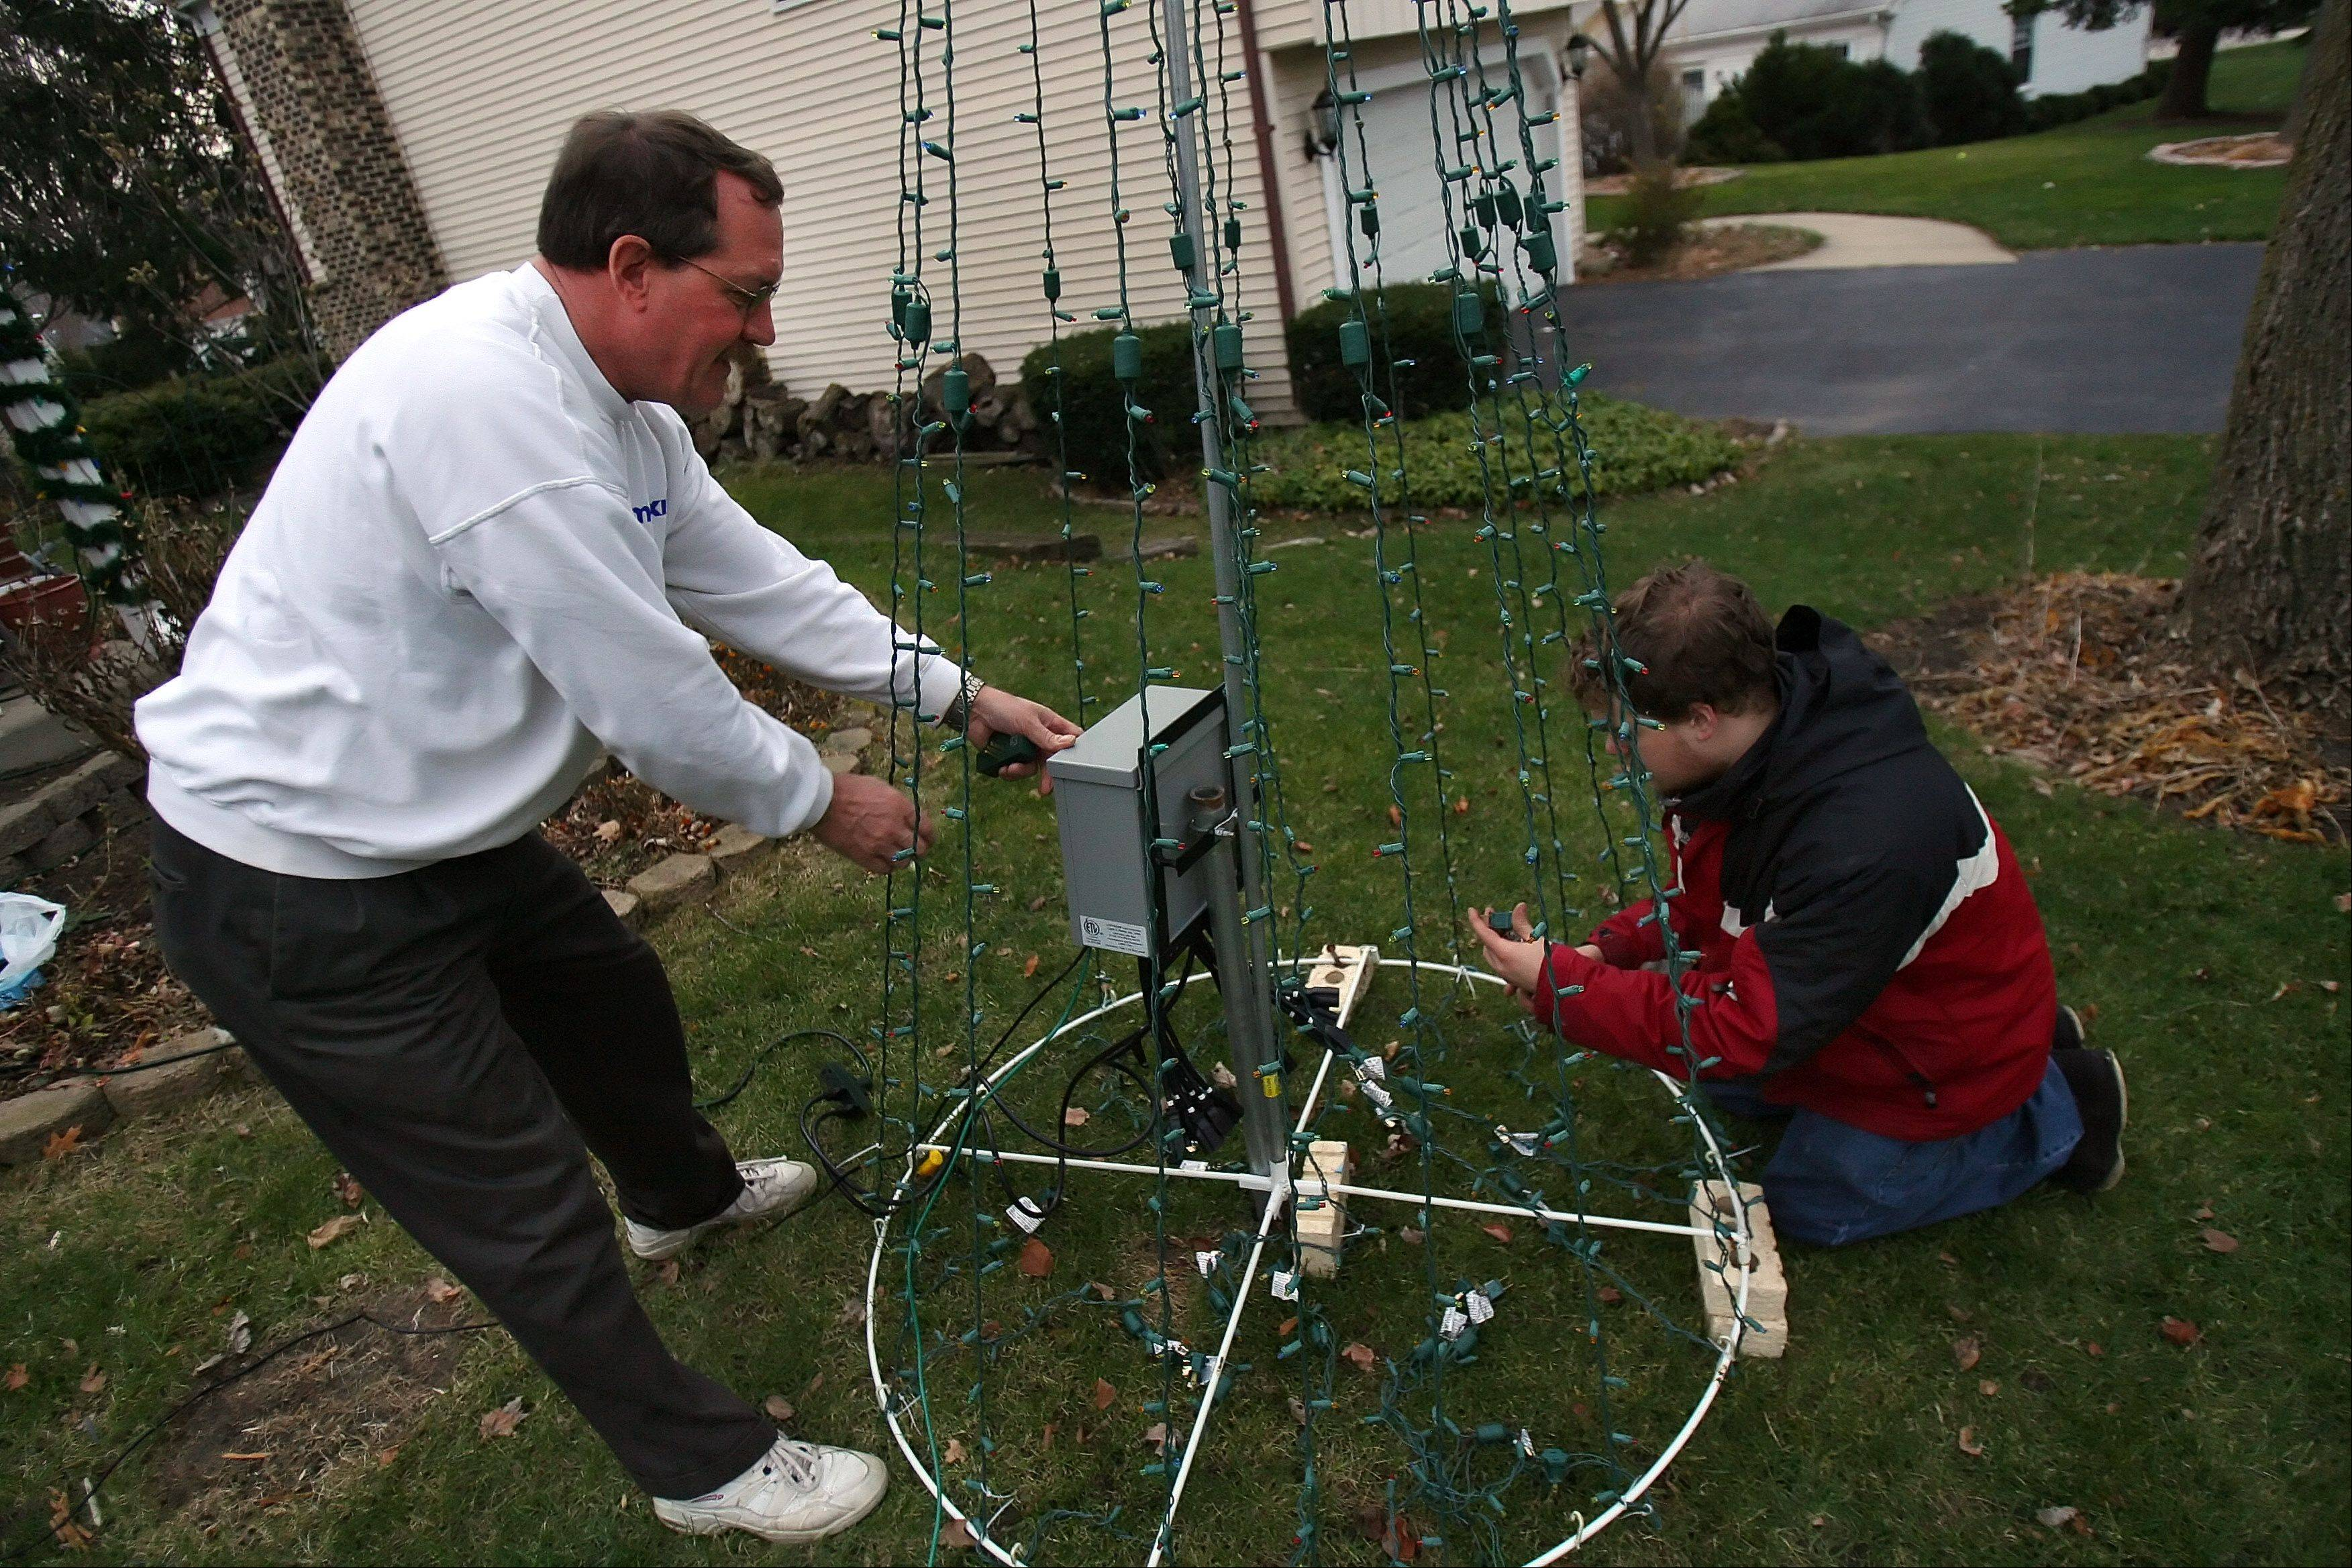 German and his father Arnold makes adjustments to the Christmas lights in their front yard.